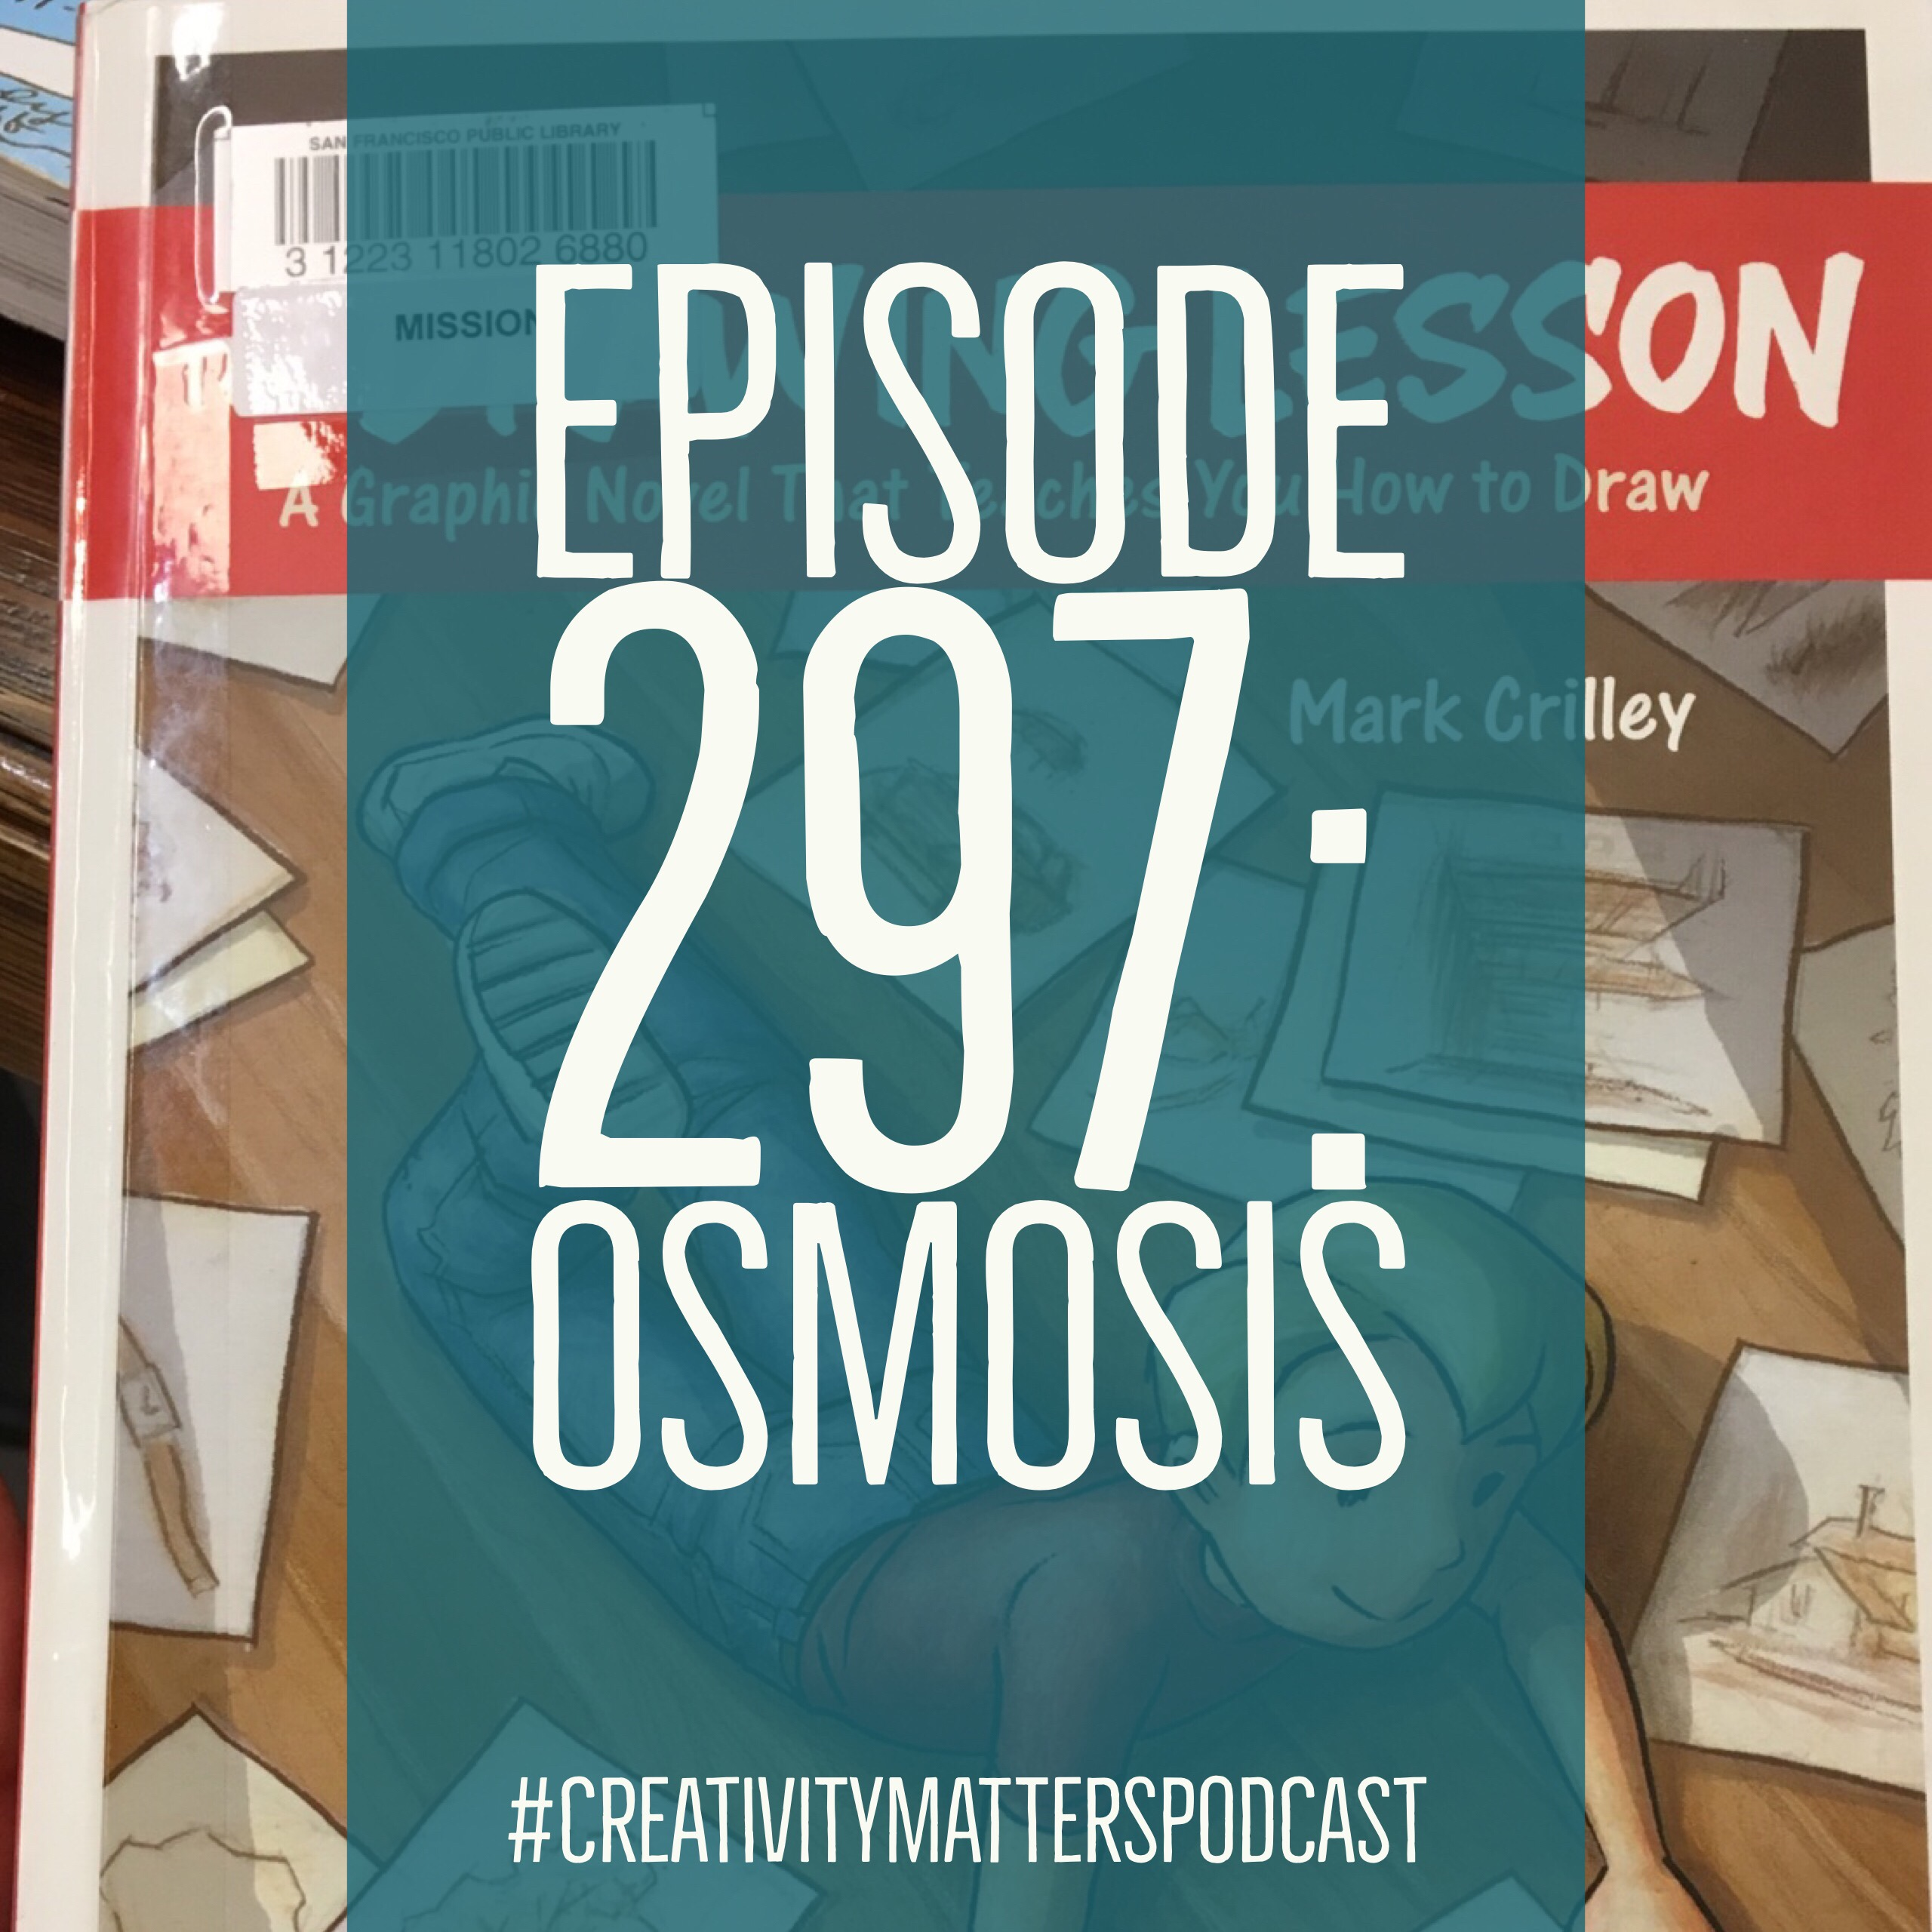 Episode 297: Osmosis